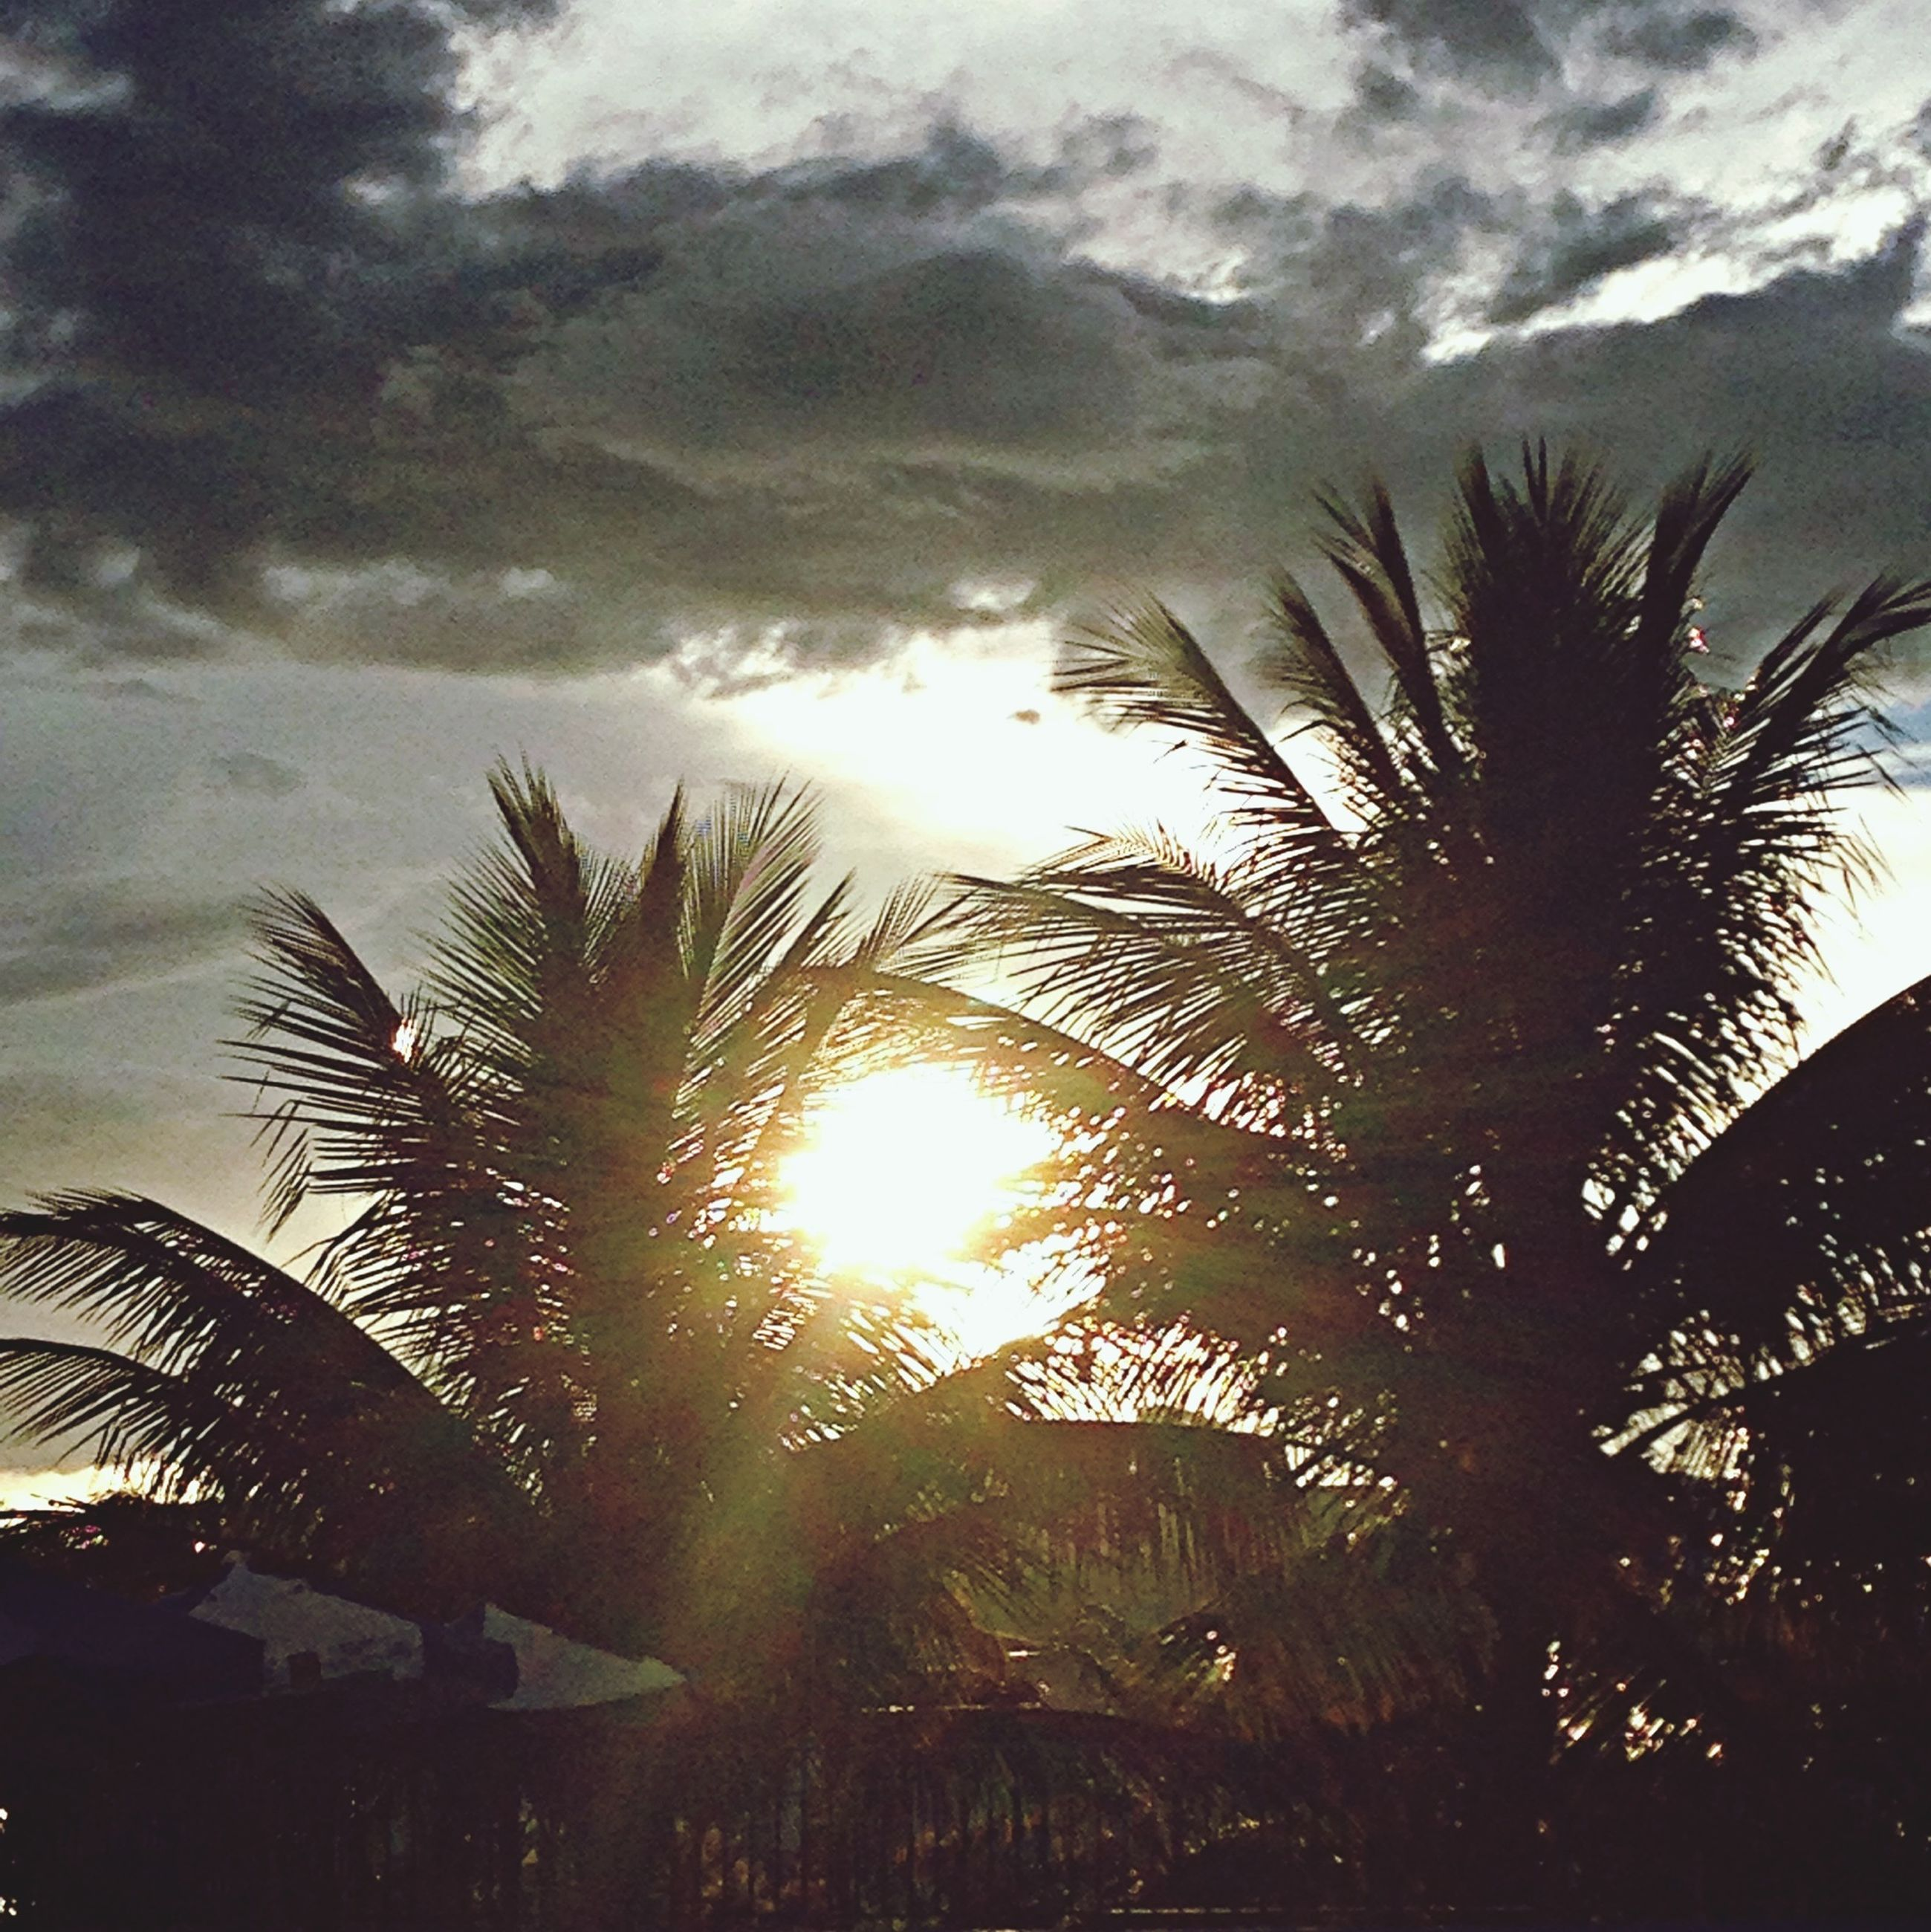 palm tree, sky, cloud - sky, tree, sun, growth, tranquility, sunset, nature, silhouette, beauty in nature, tranquil scene, scenics, cloudy, sunlight, water, cloud, sunbeam, sea, no people